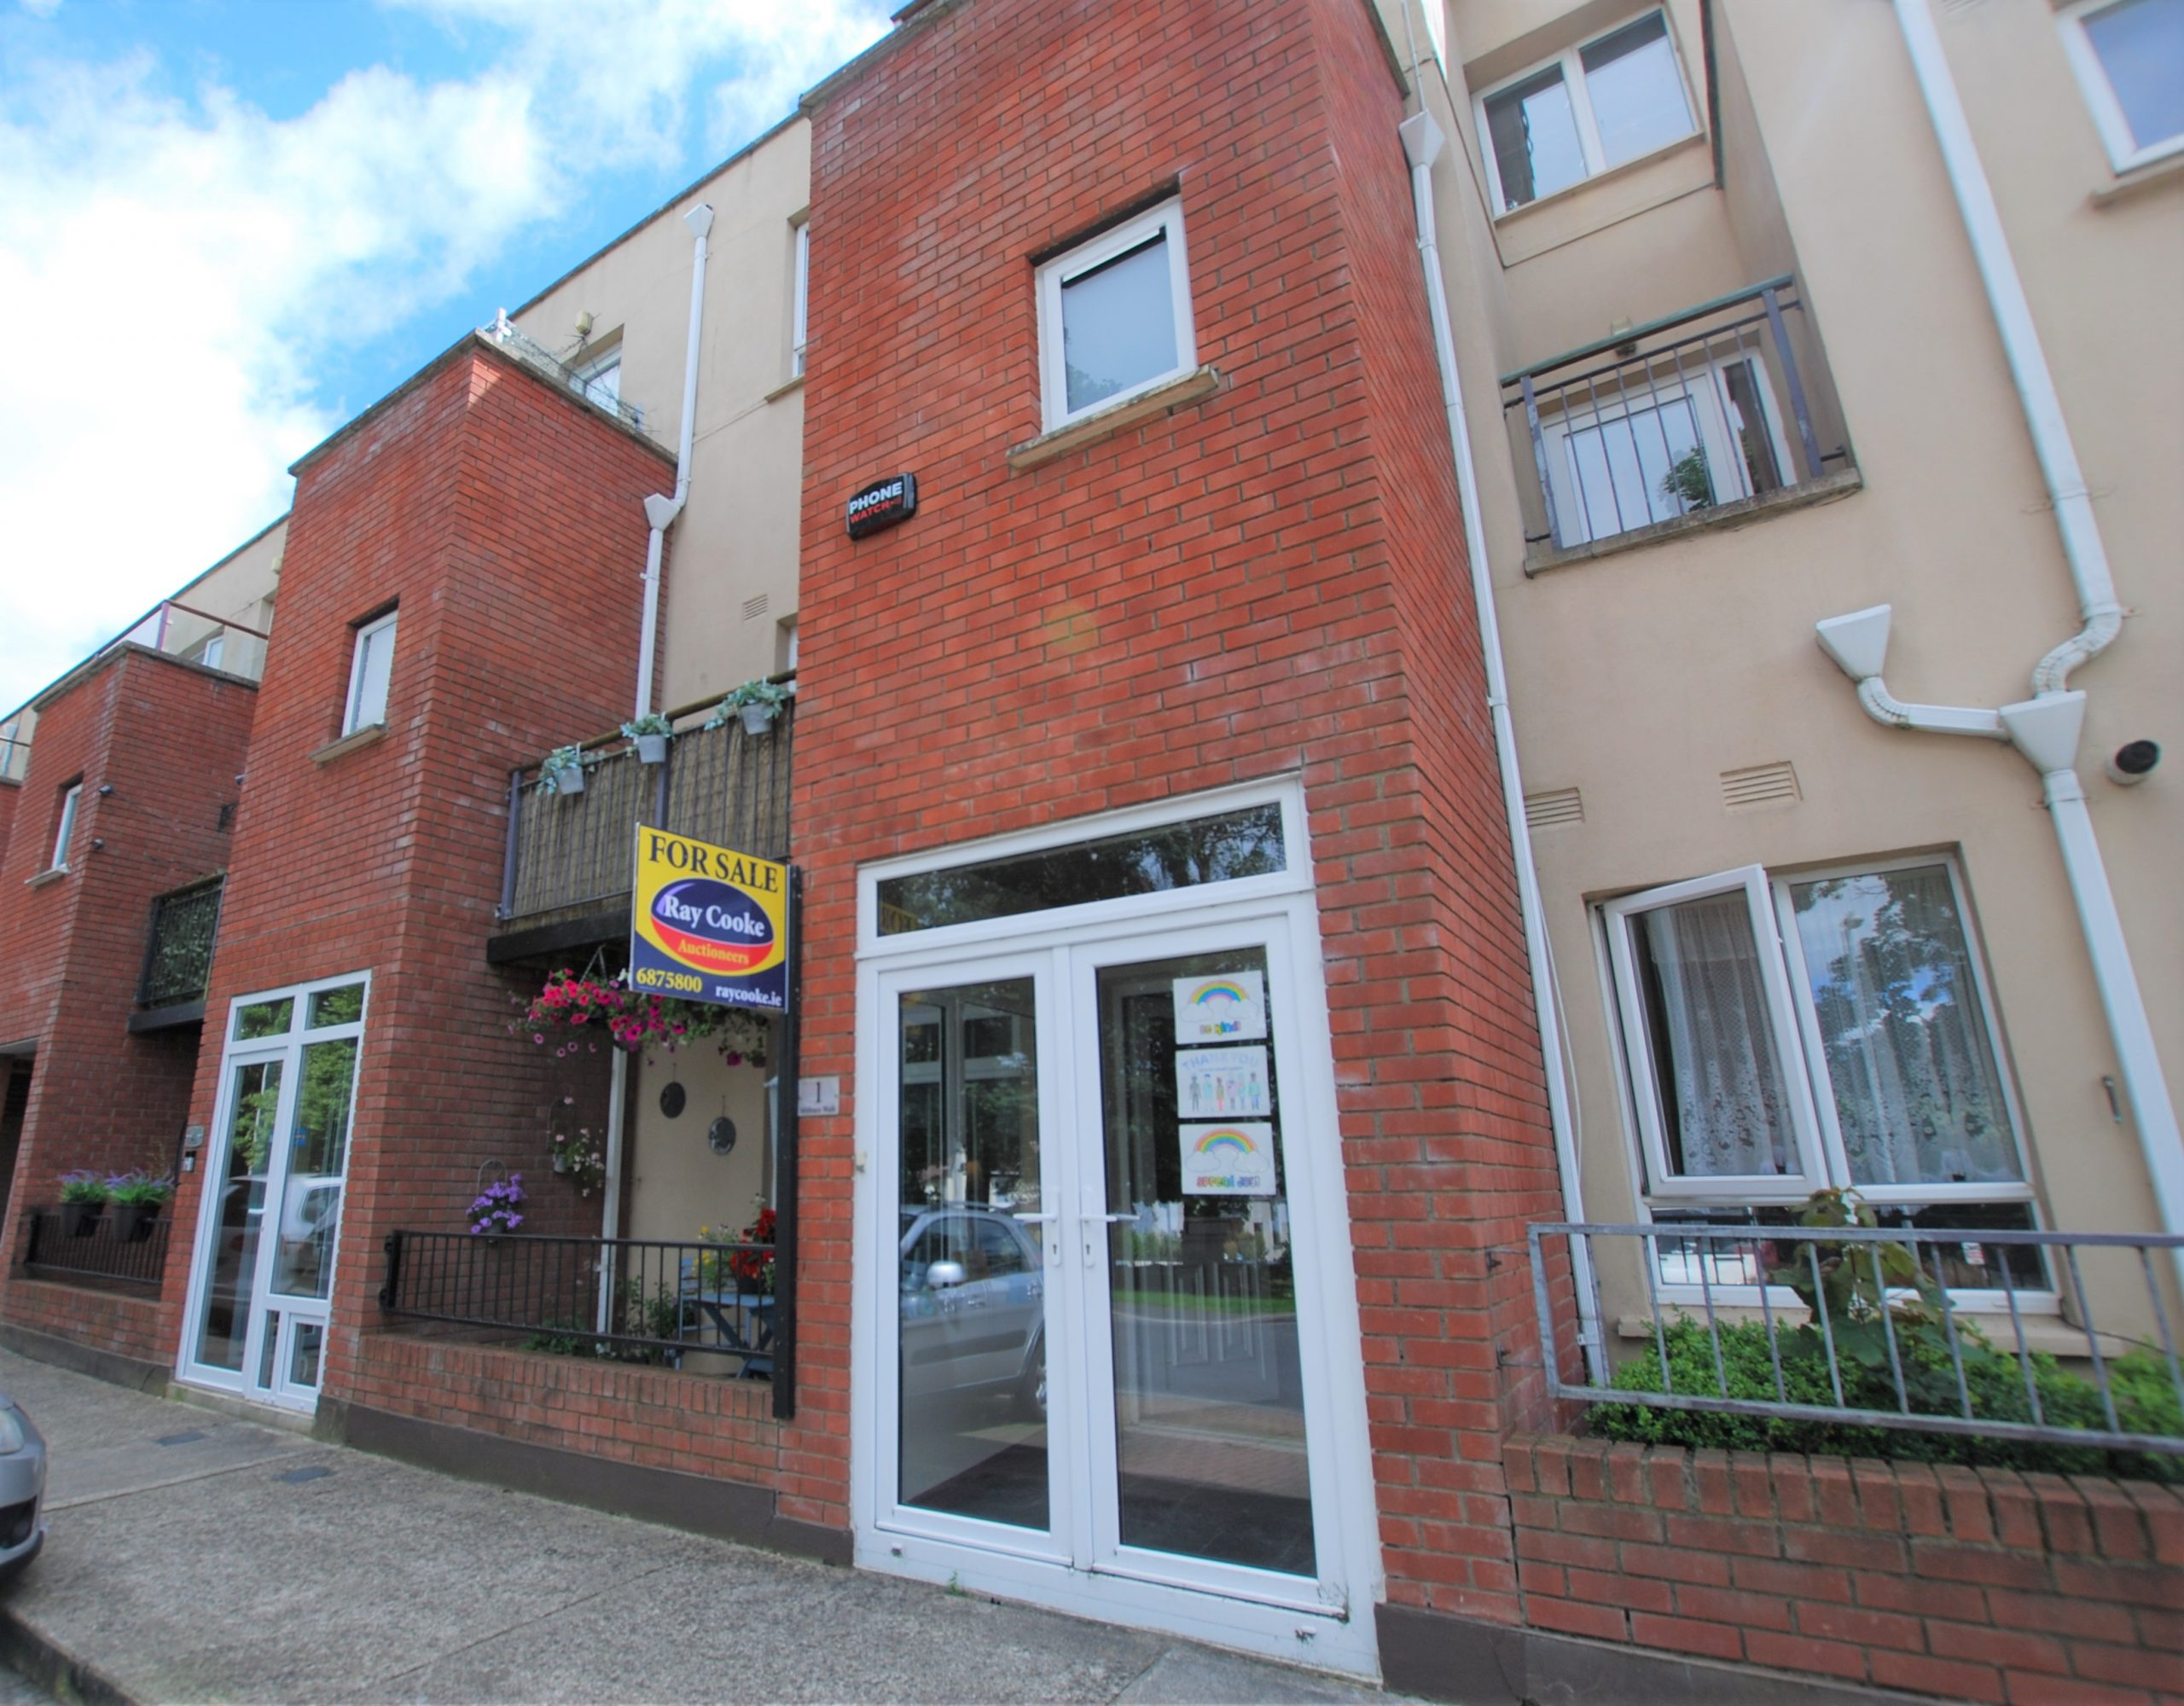 1 Millrace Walk, Saggart, Co. Dublin, D24 Y898